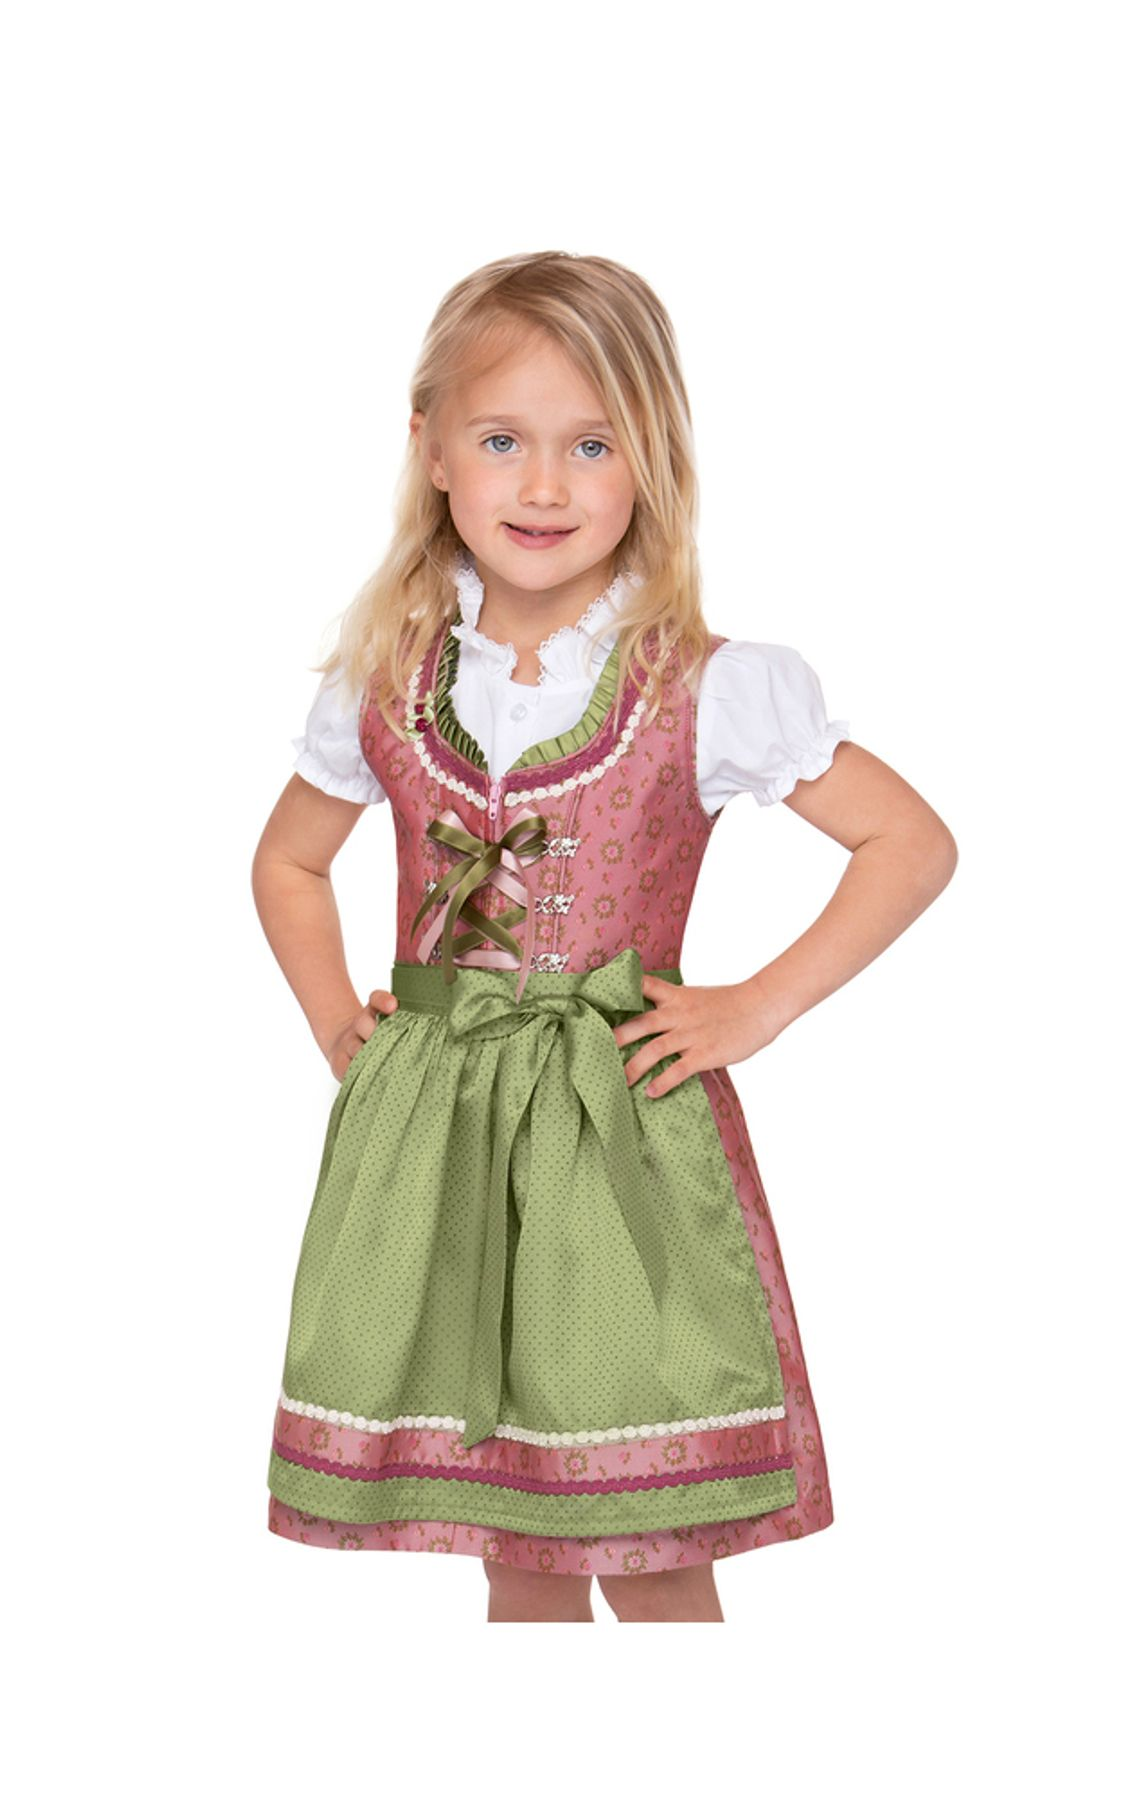 Stockerpoint - Kinder Trachten Dirndl Suki in Rose, Gr. 122-152 – Bild 1